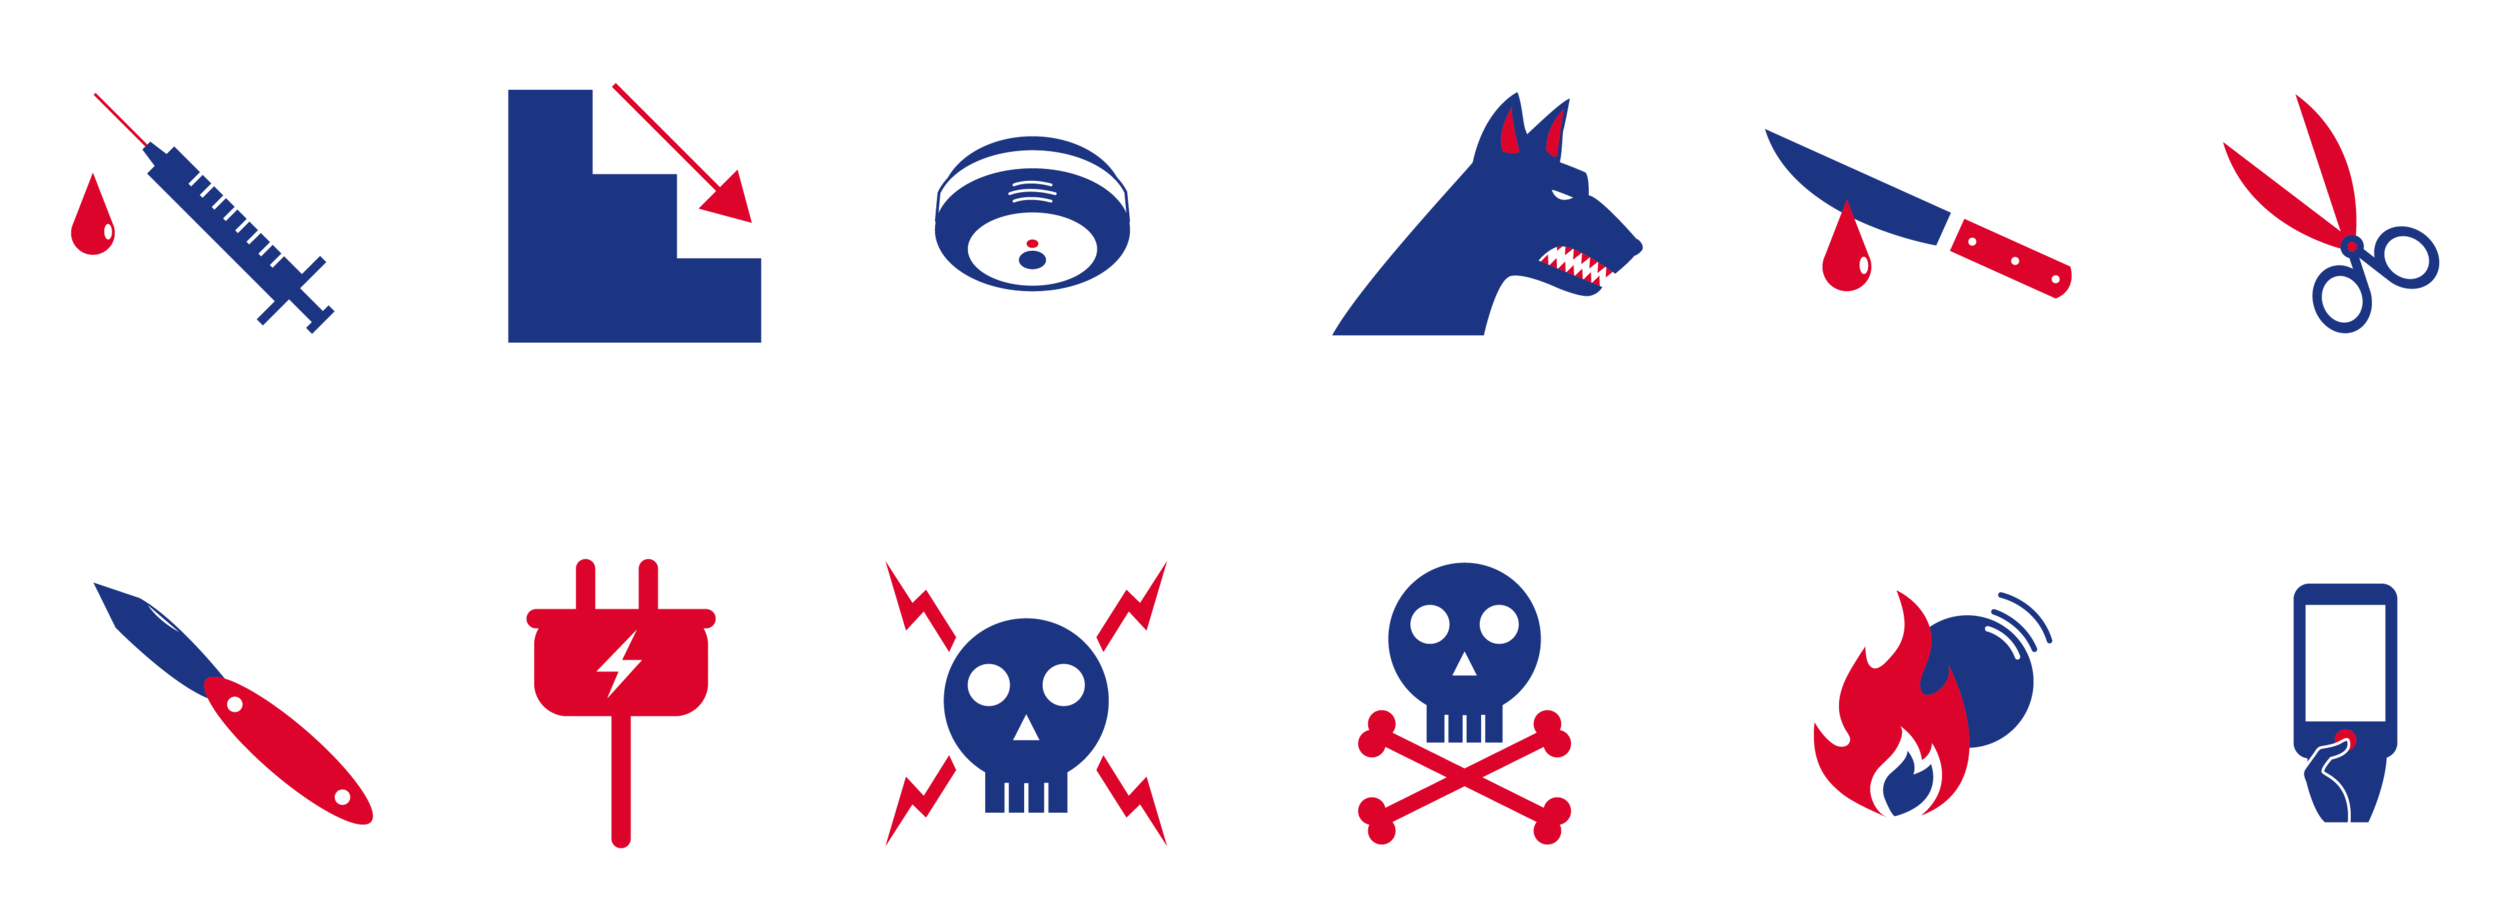 15-08-19_icons_2_ .png